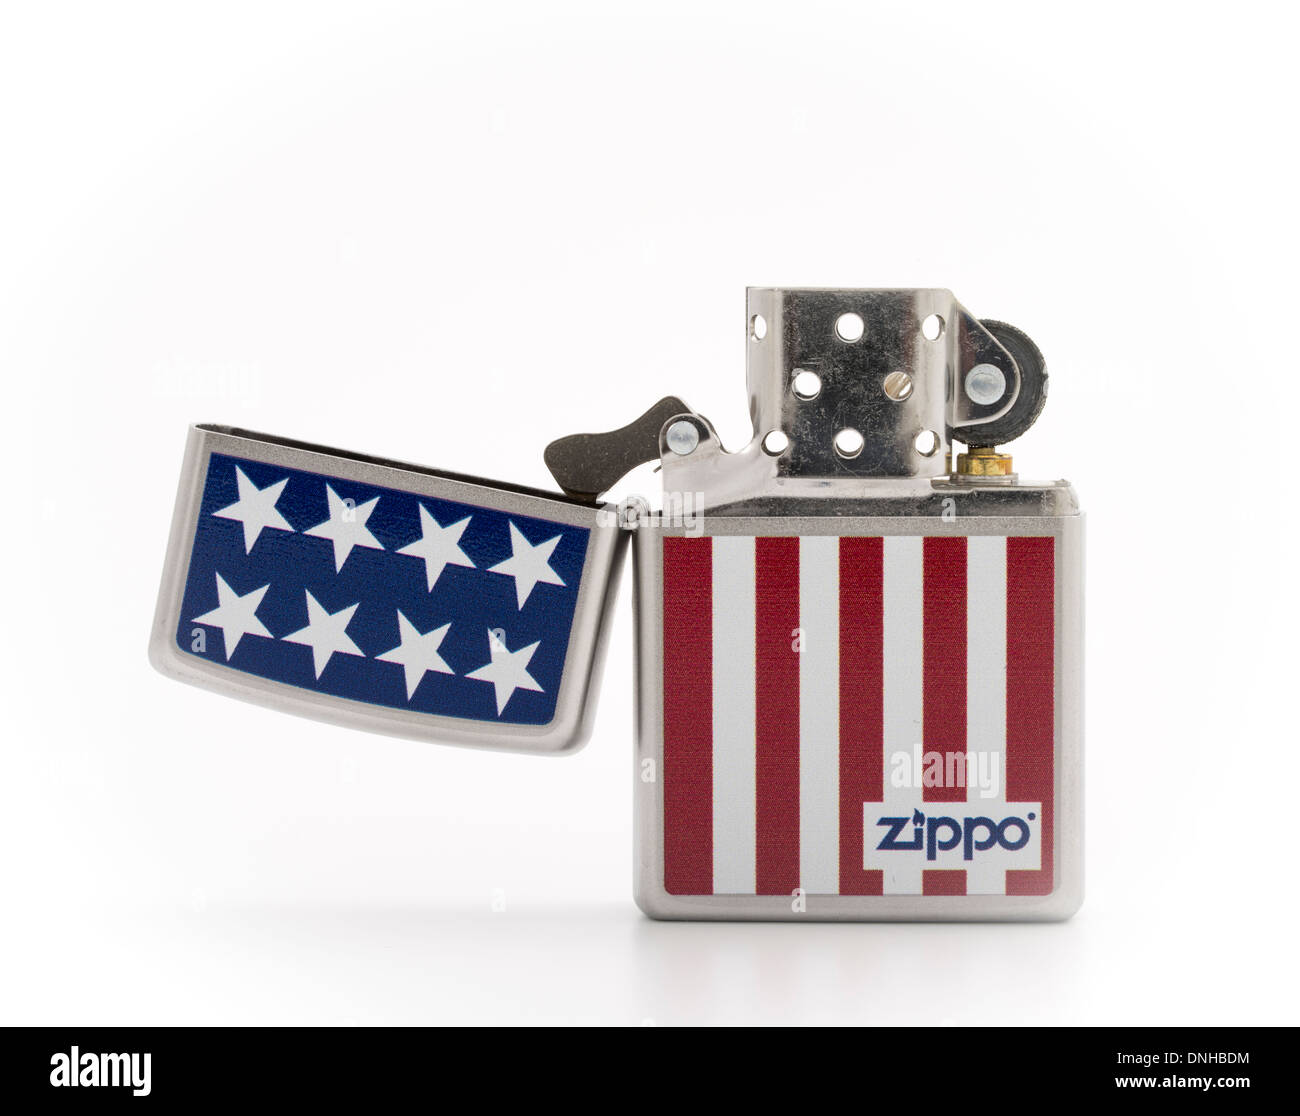 Zippo iconic cigarette lighter made in the USA Stars & Stripes design - Stock Image